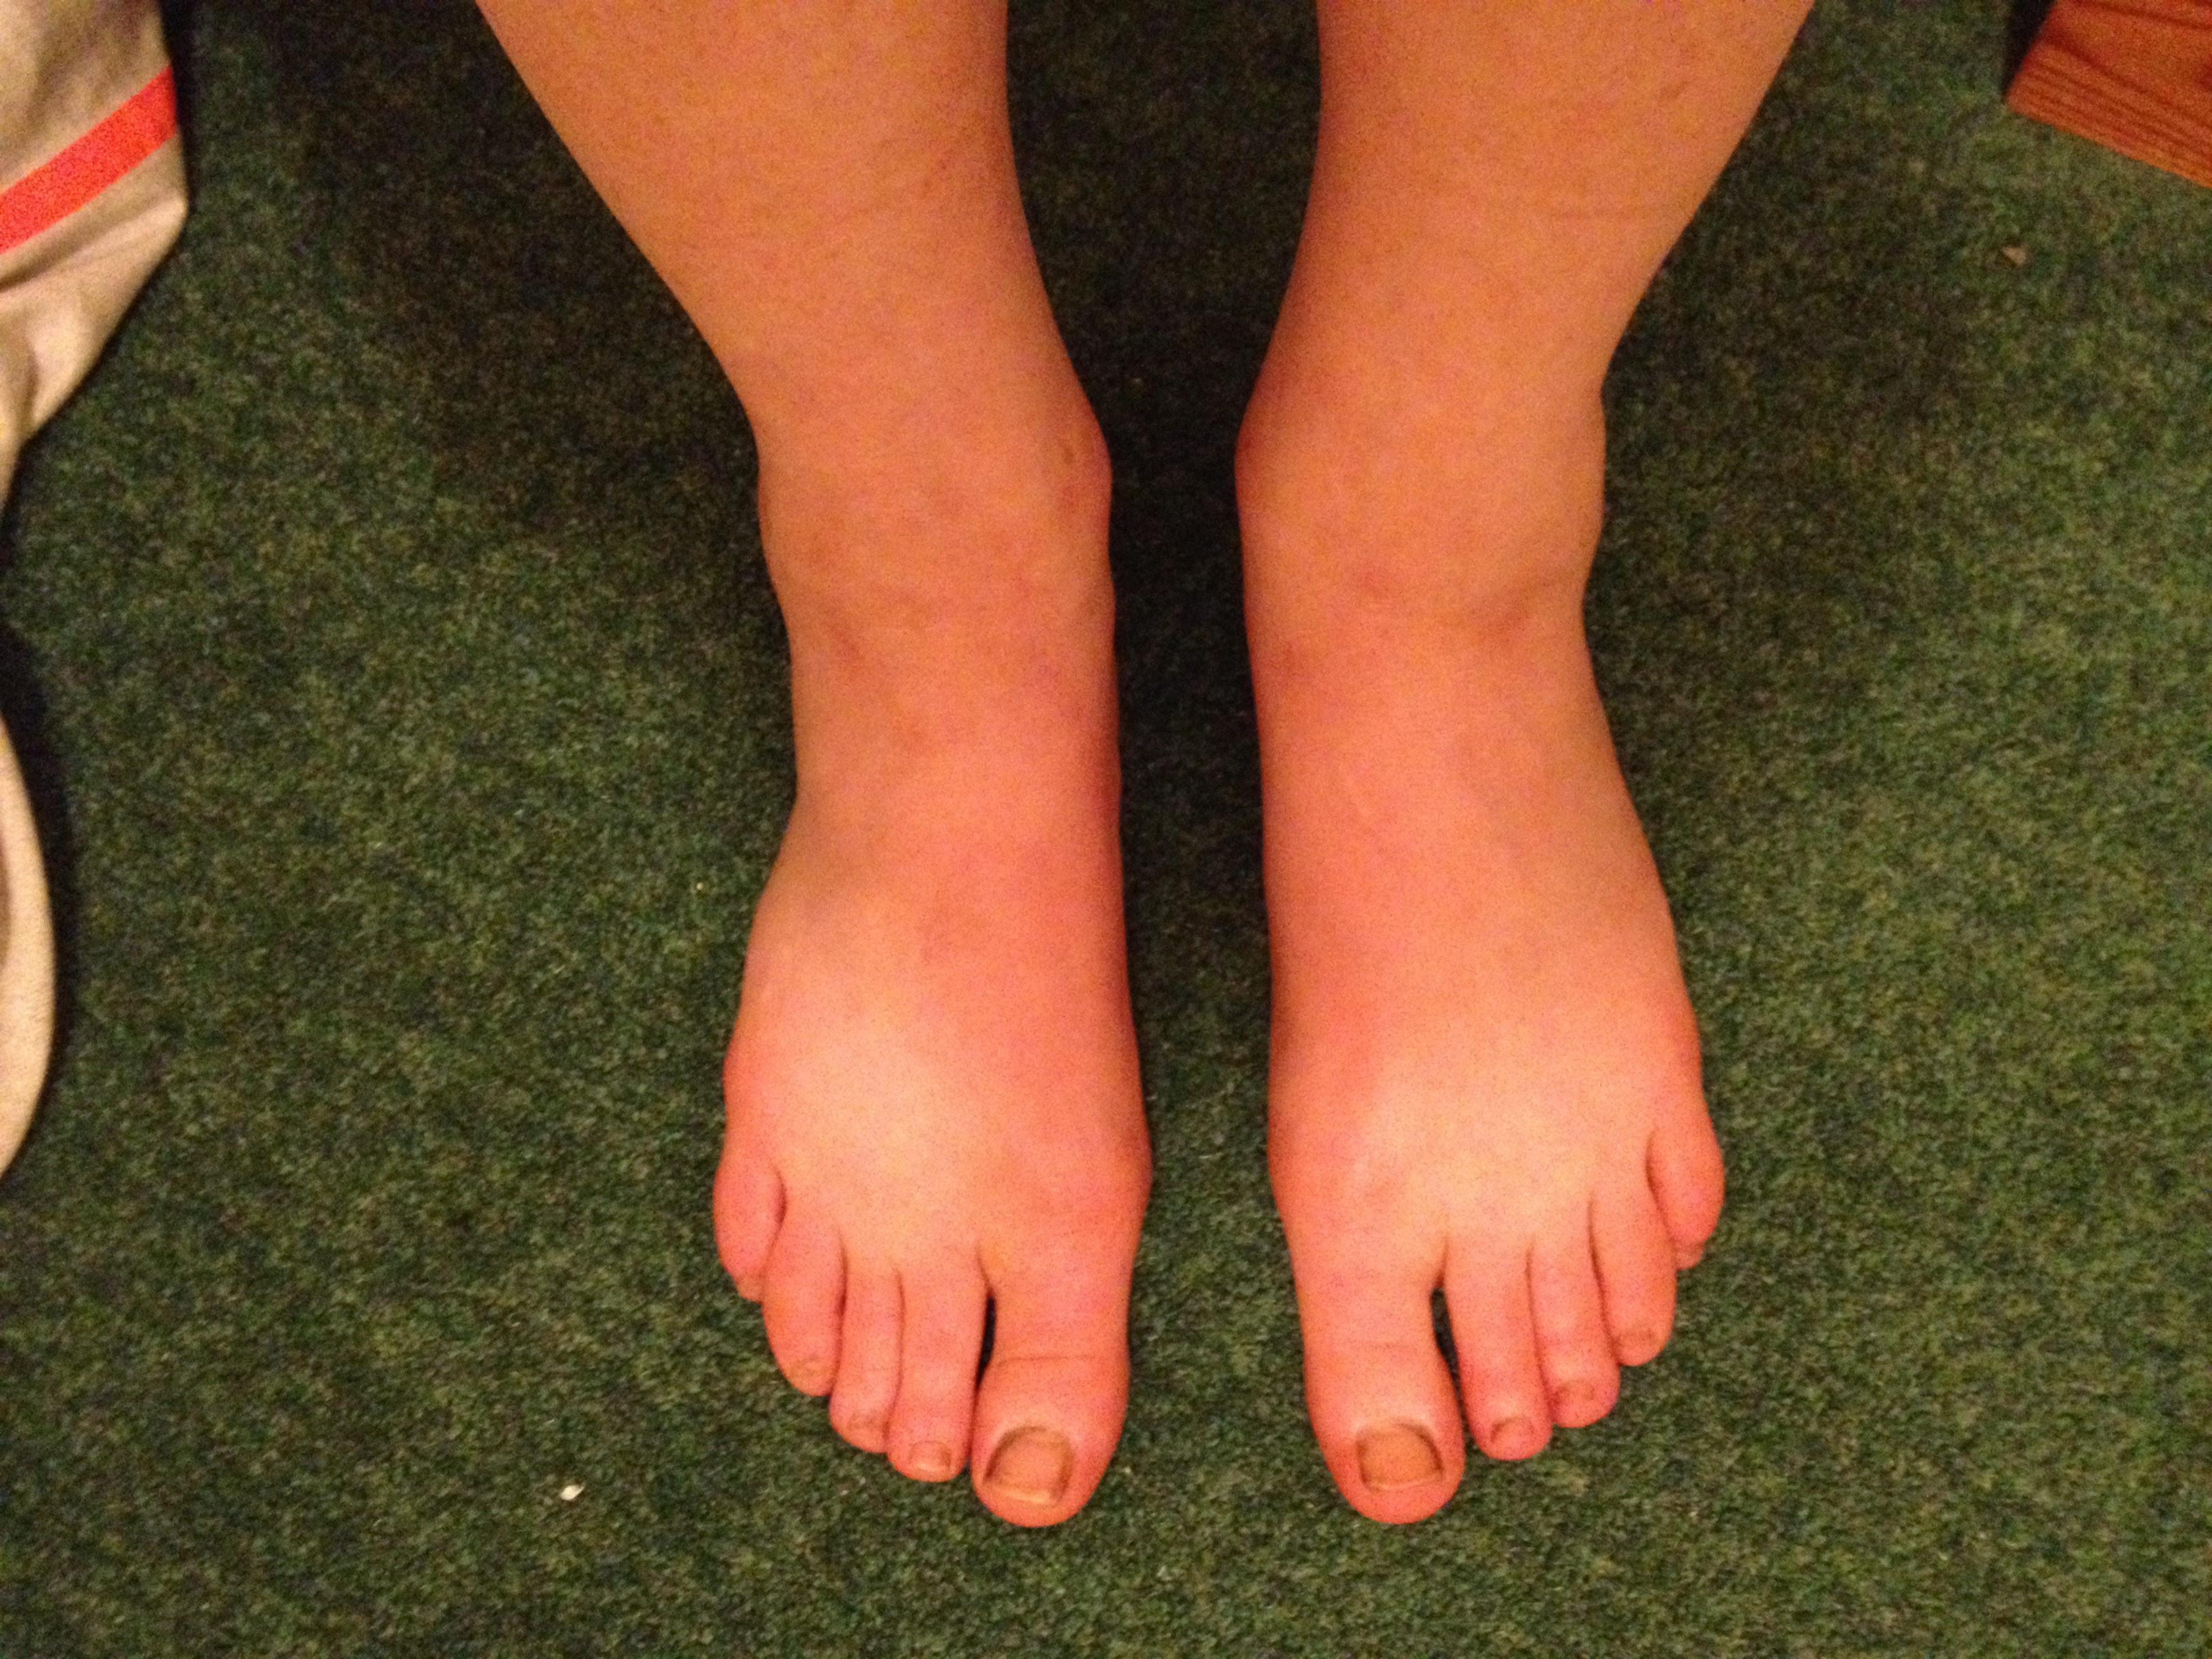 IMG_3905 BG swollen feet after.JPG